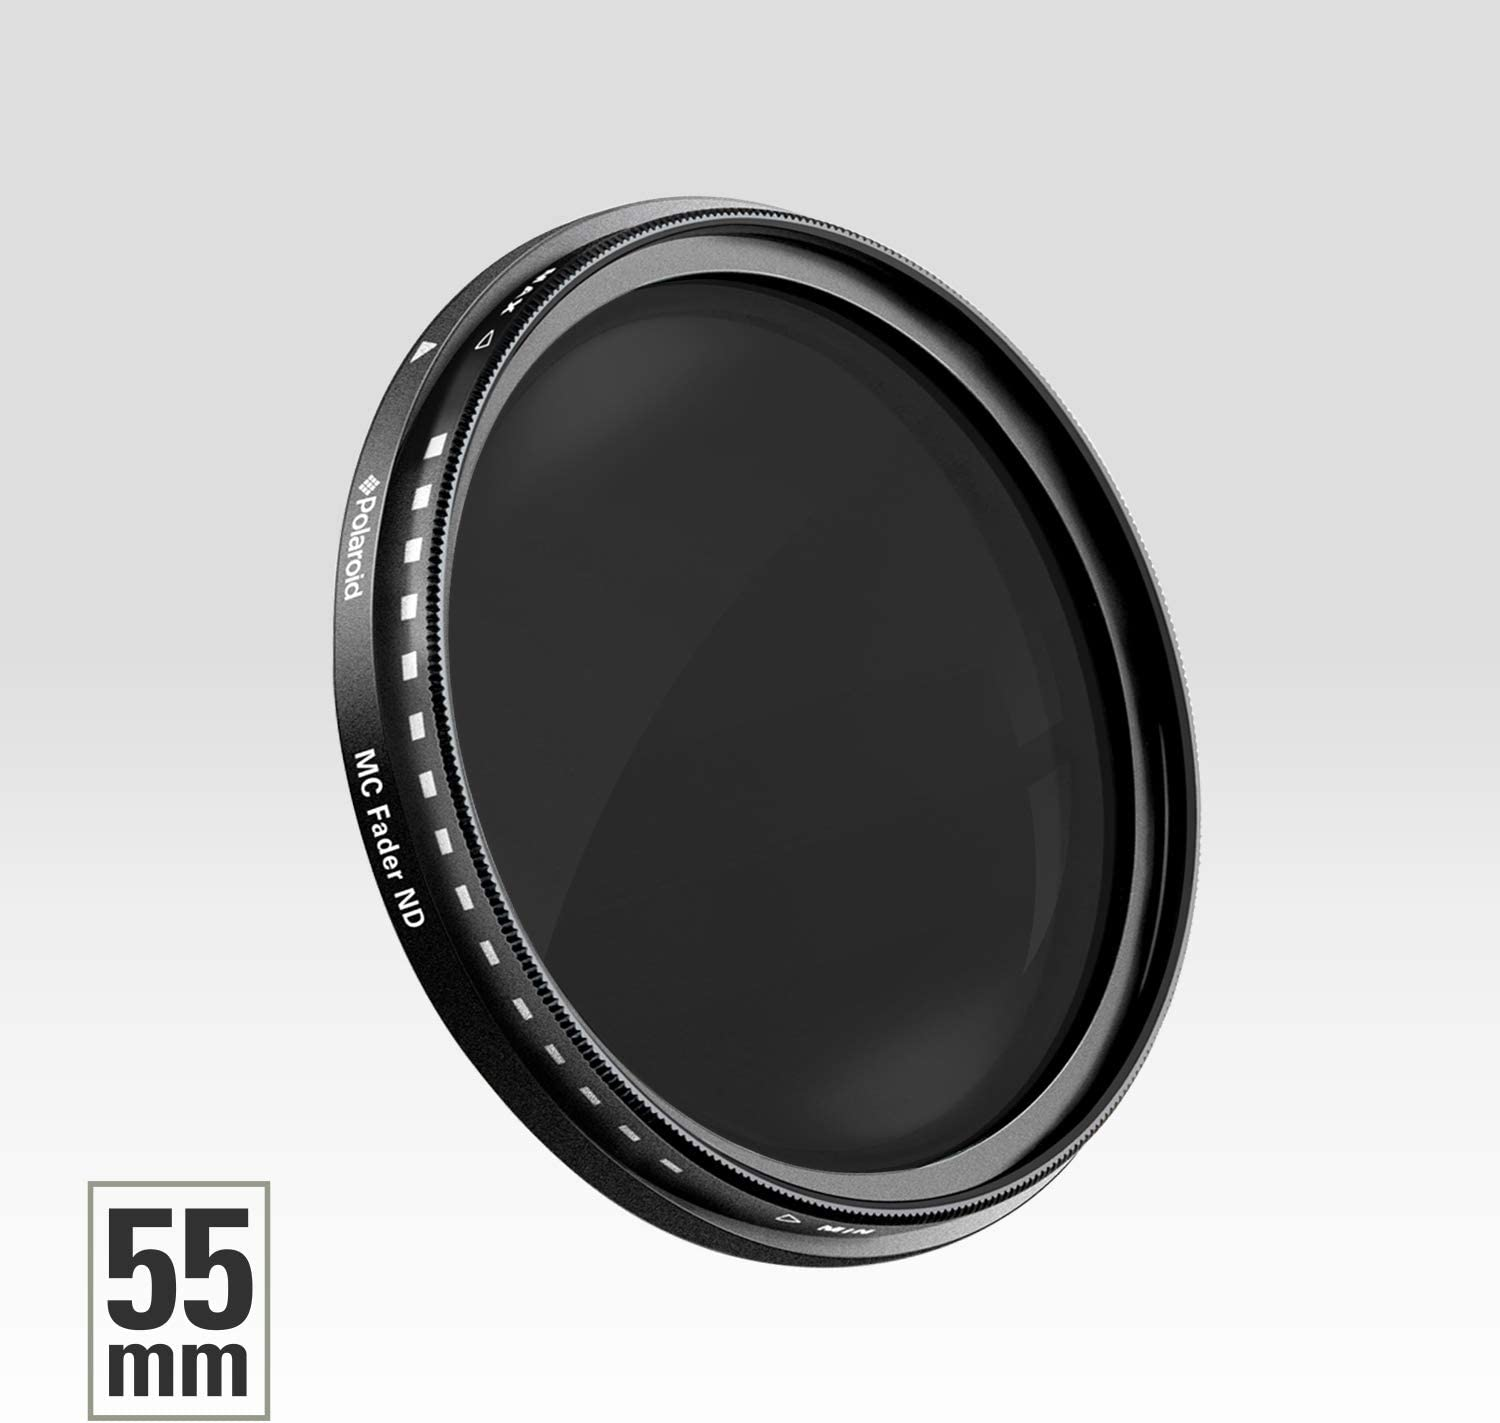 Compatible w// All Popular Camera Lens Models Polaroid Optics 52mm Multi-Coated Variable Range ND3, ND6, ND9, ND16, ND32, ND400 Neutral Density Fader Filter ND2-ND2000